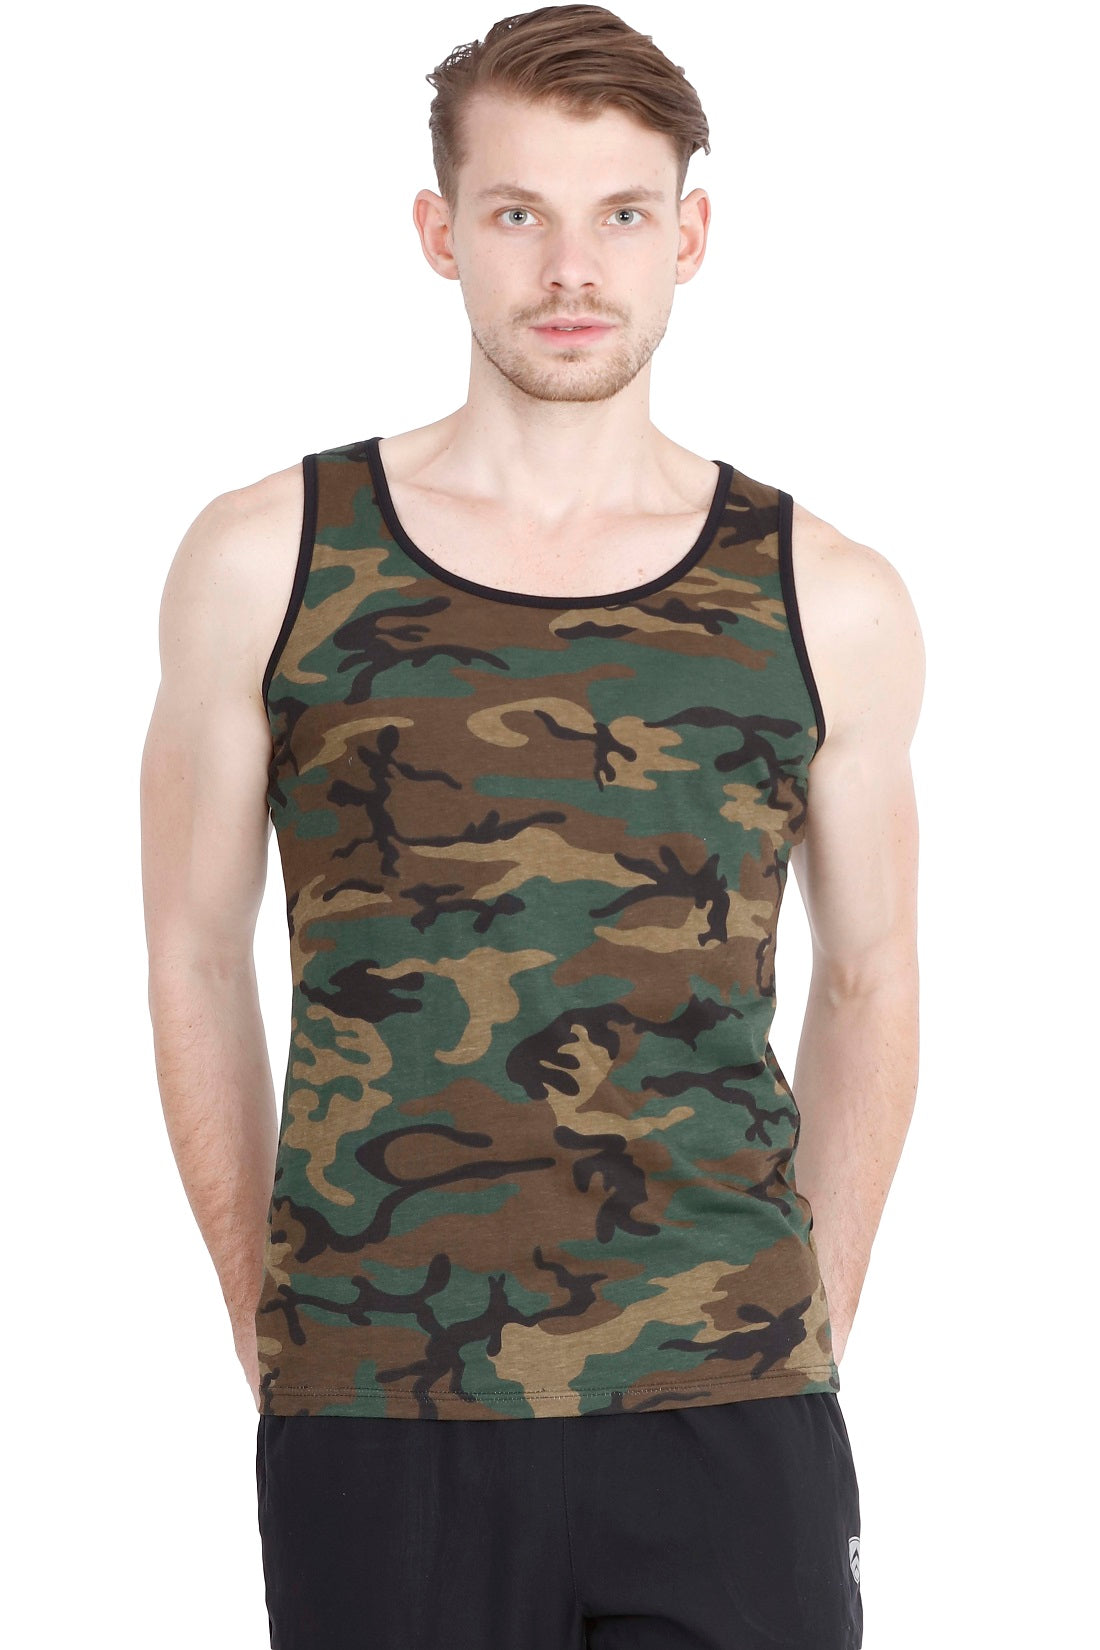 Hunt and Howe Men's Camouflage Sleeveless T-Shirt